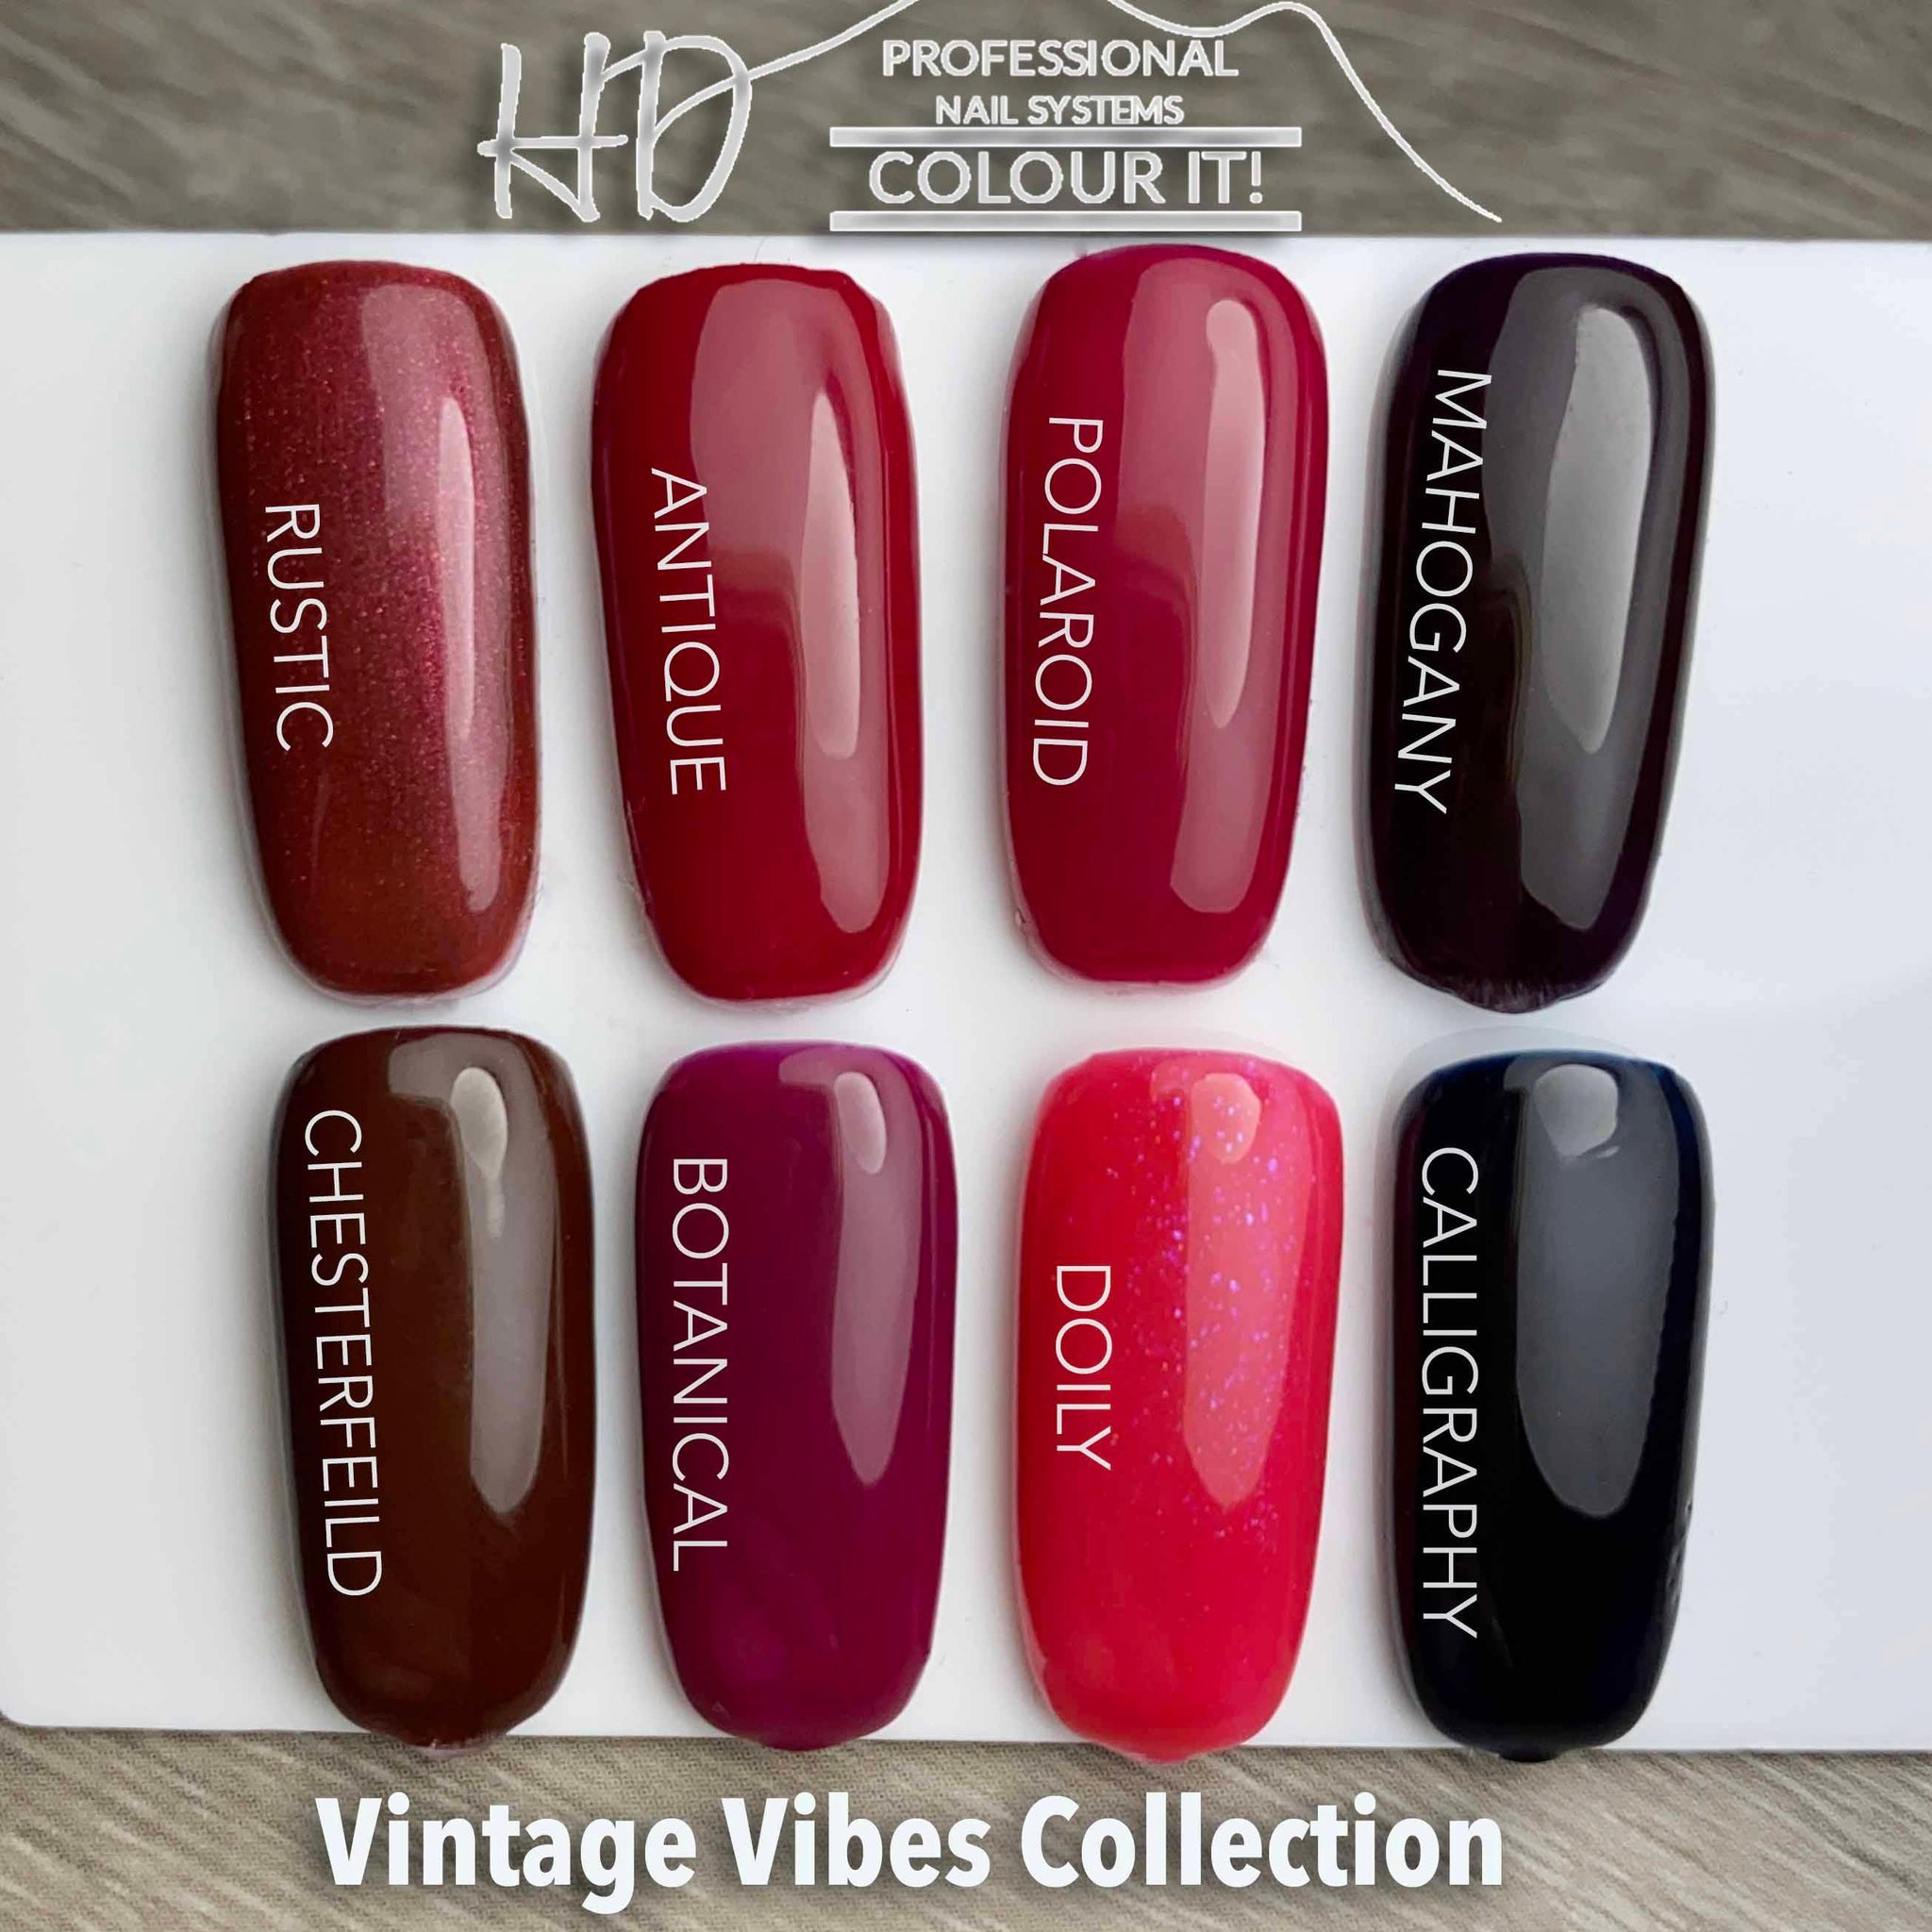 HD Colour It! Vintage Vibes Collection (all 8 colors 15ml)